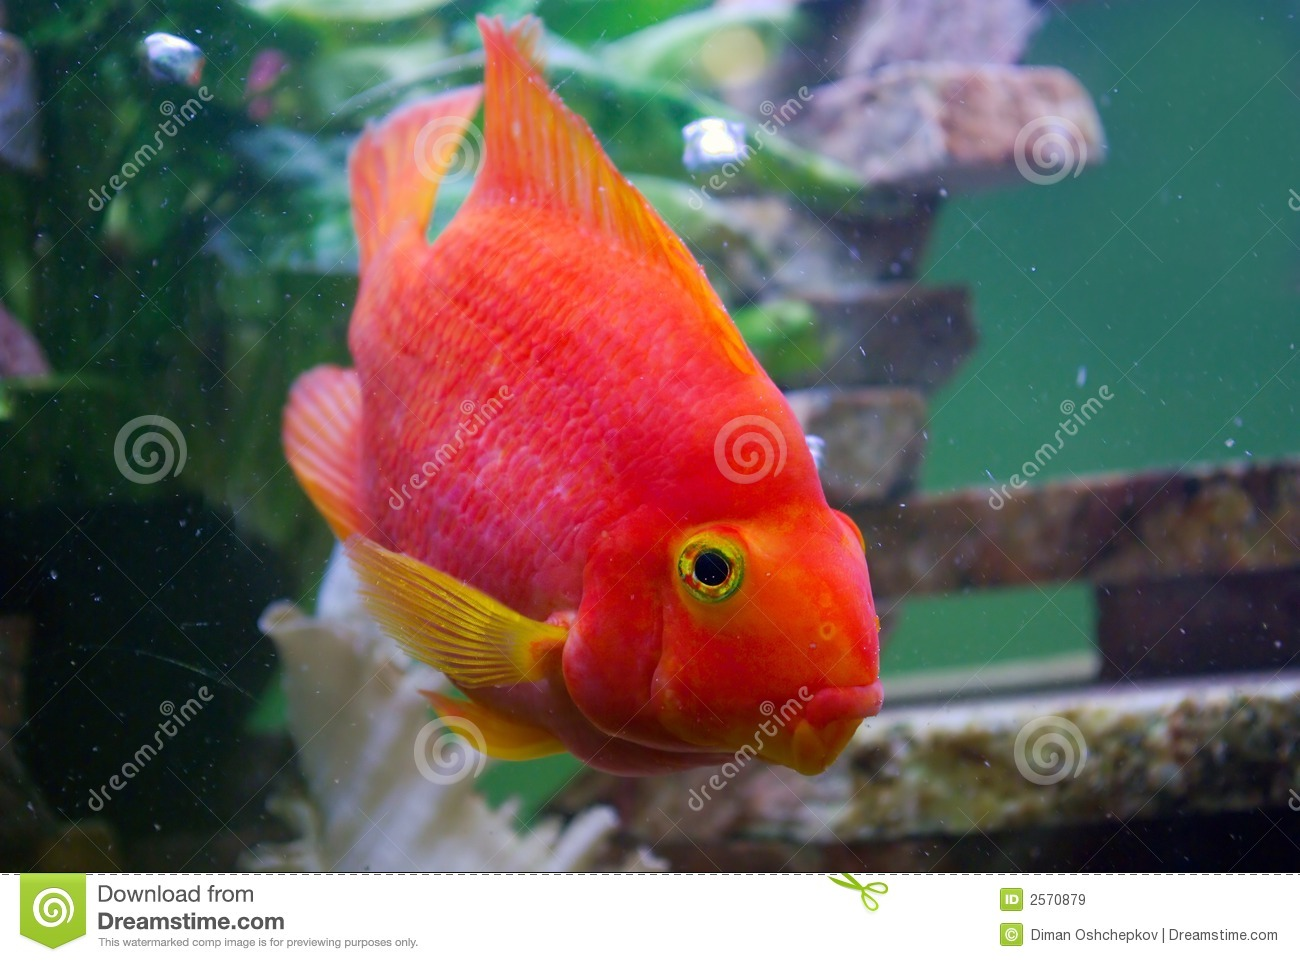 Yellow Discus Fish In Aquarium Stock Image - Image of under, spotted ...